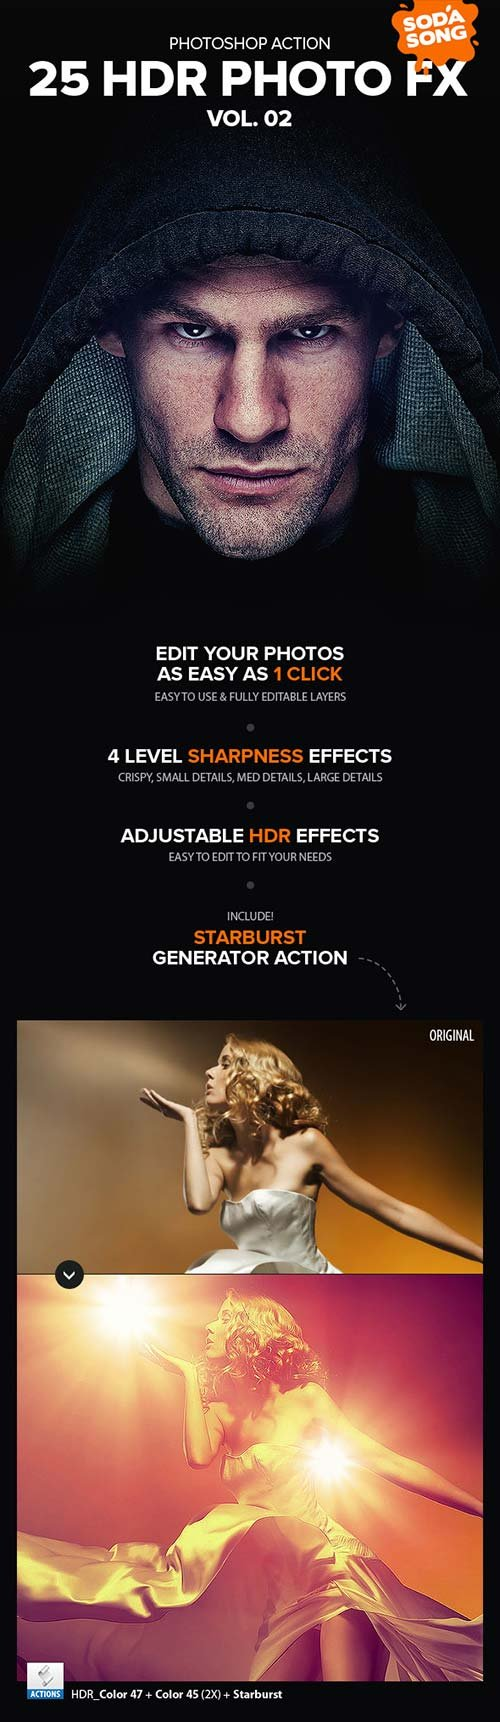 GraphicRiver 25 HDR Photo FX V.2 - Photoshop Action